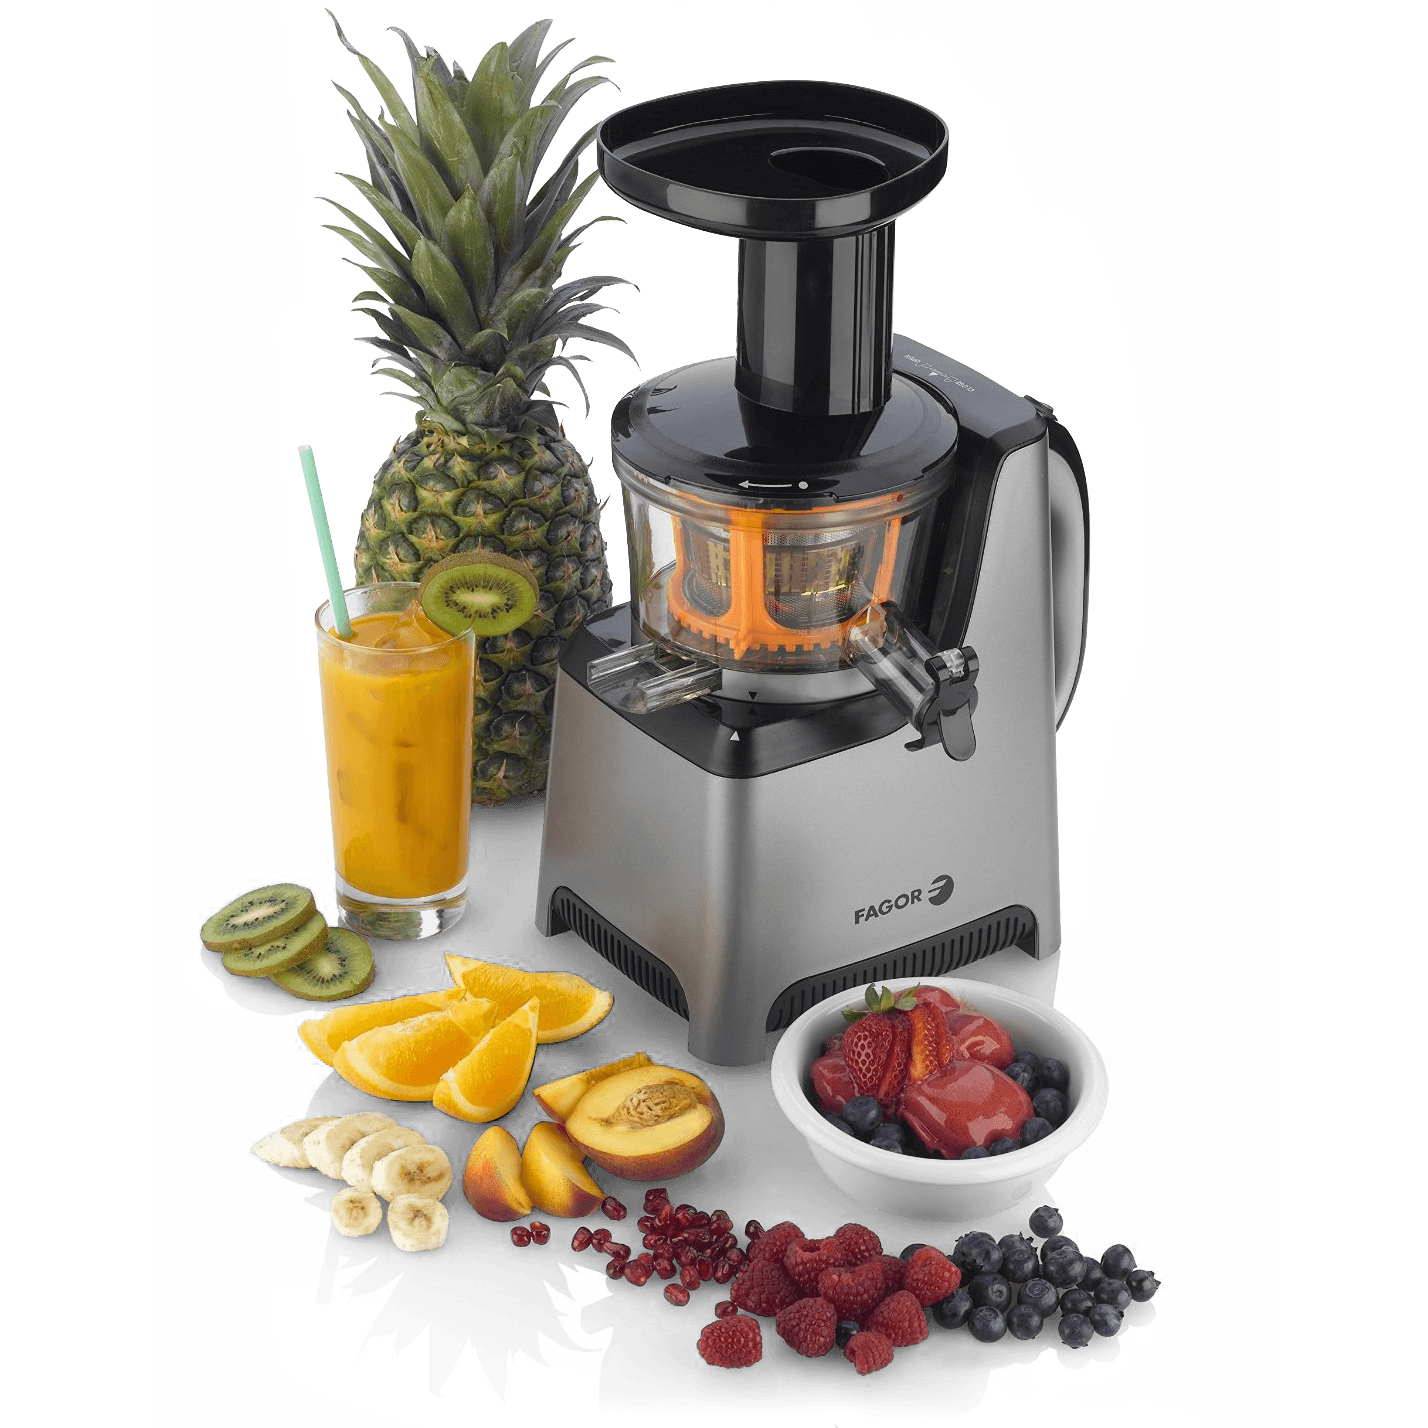 Fagor Platino Slow Juicer Review : Fagor Platino Plus Slow Juicer and Sorbet Maker